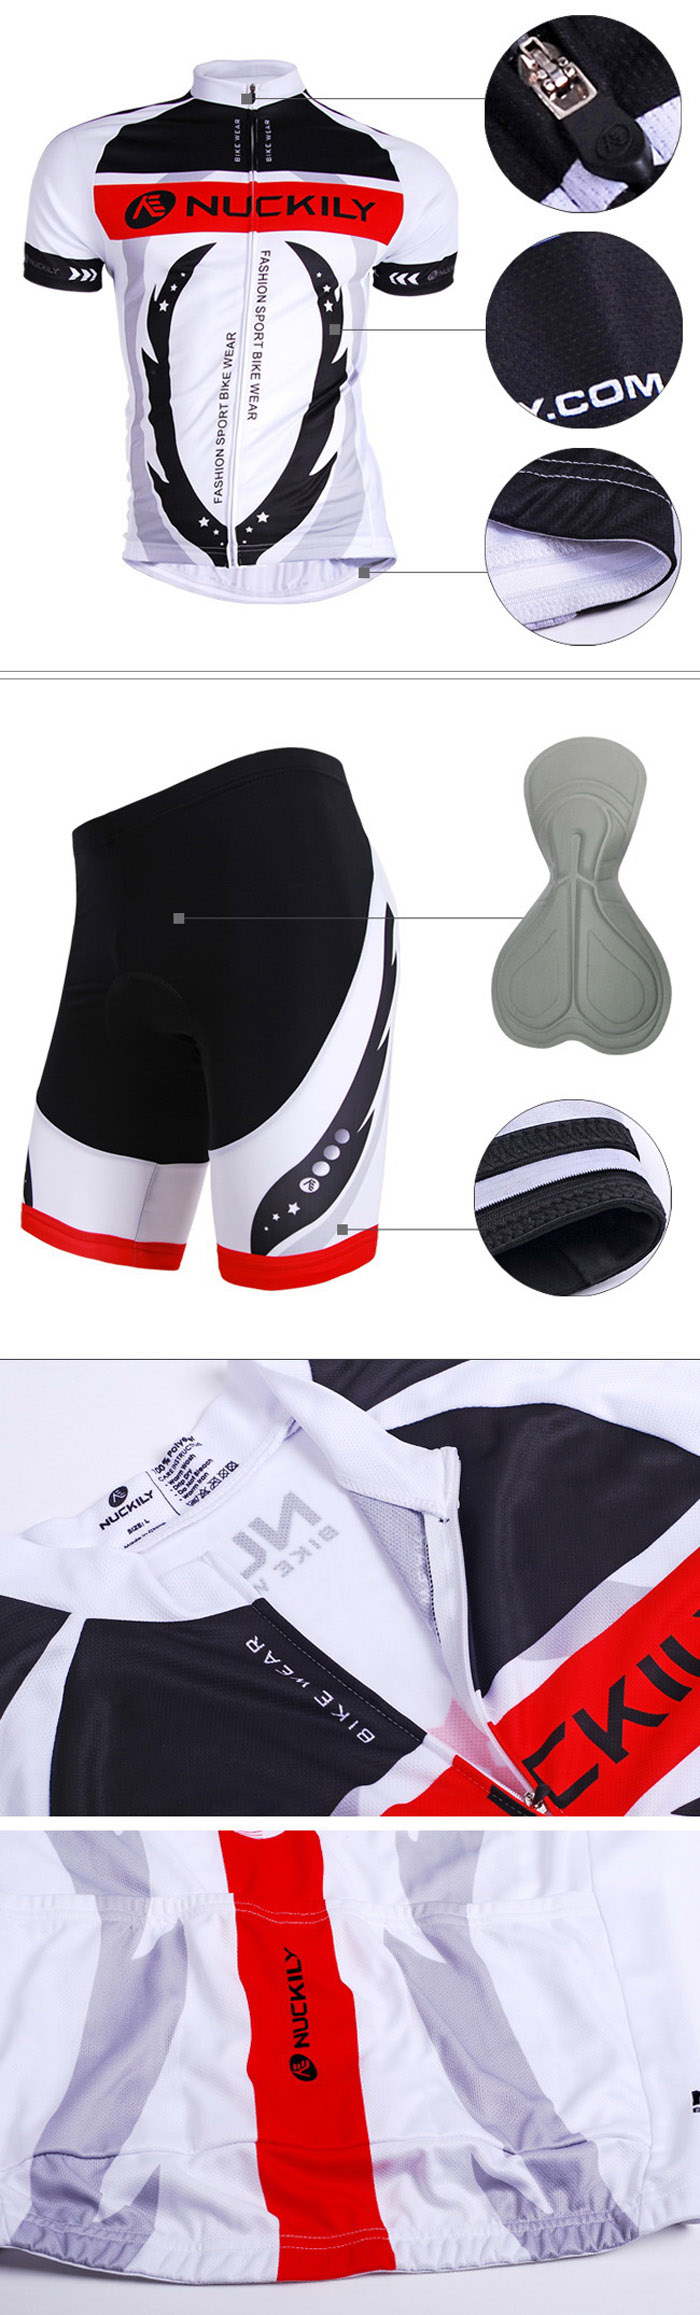 NUCKILY AJ208 BK267 Men Polyester Windproof Bicycle Cycling Suit